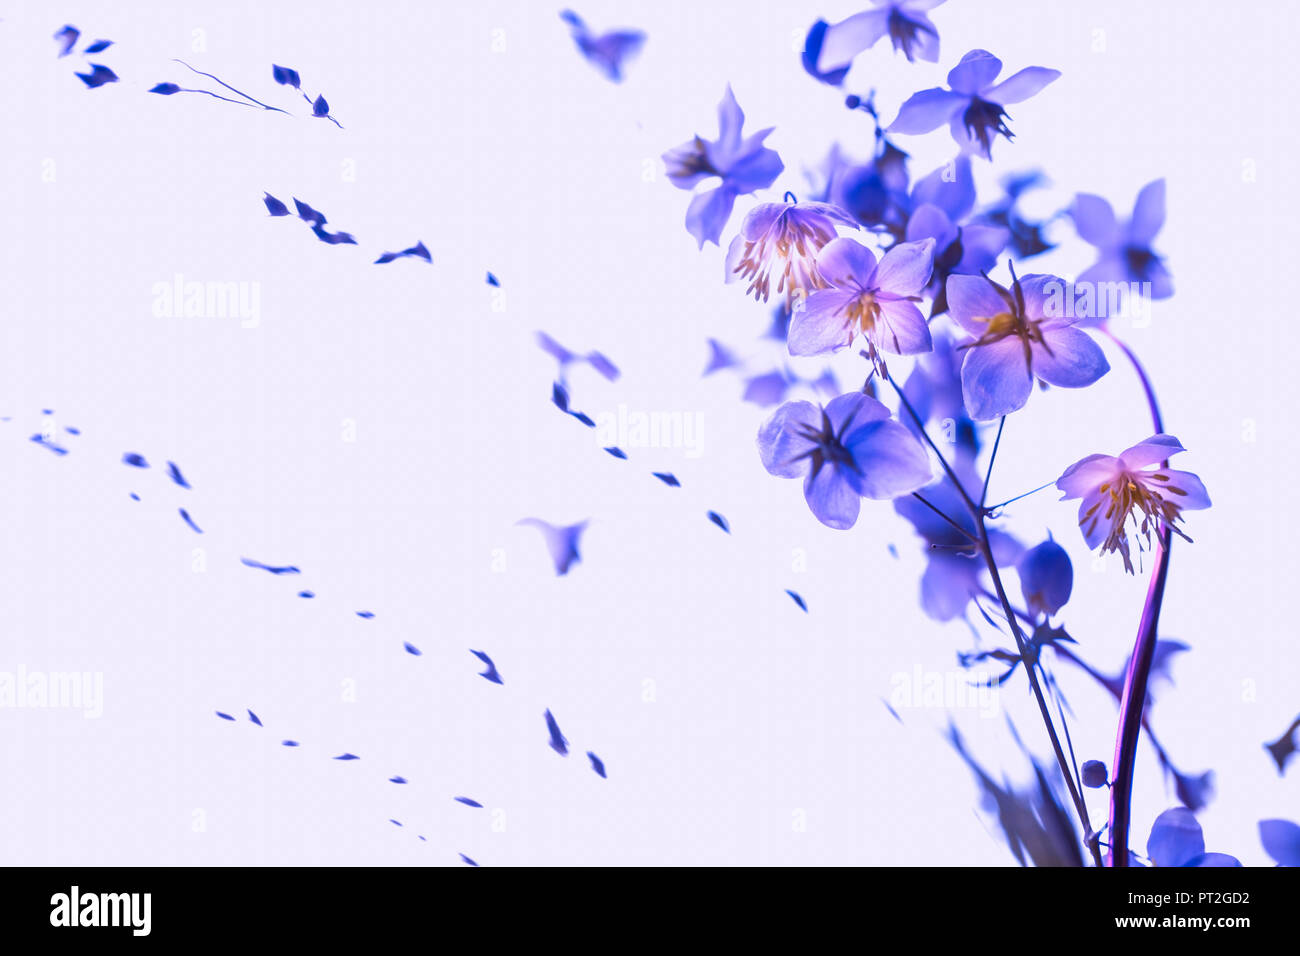 Small flowers coming out big - ultraviolet, pastel, soft and romantic. - Stock Image